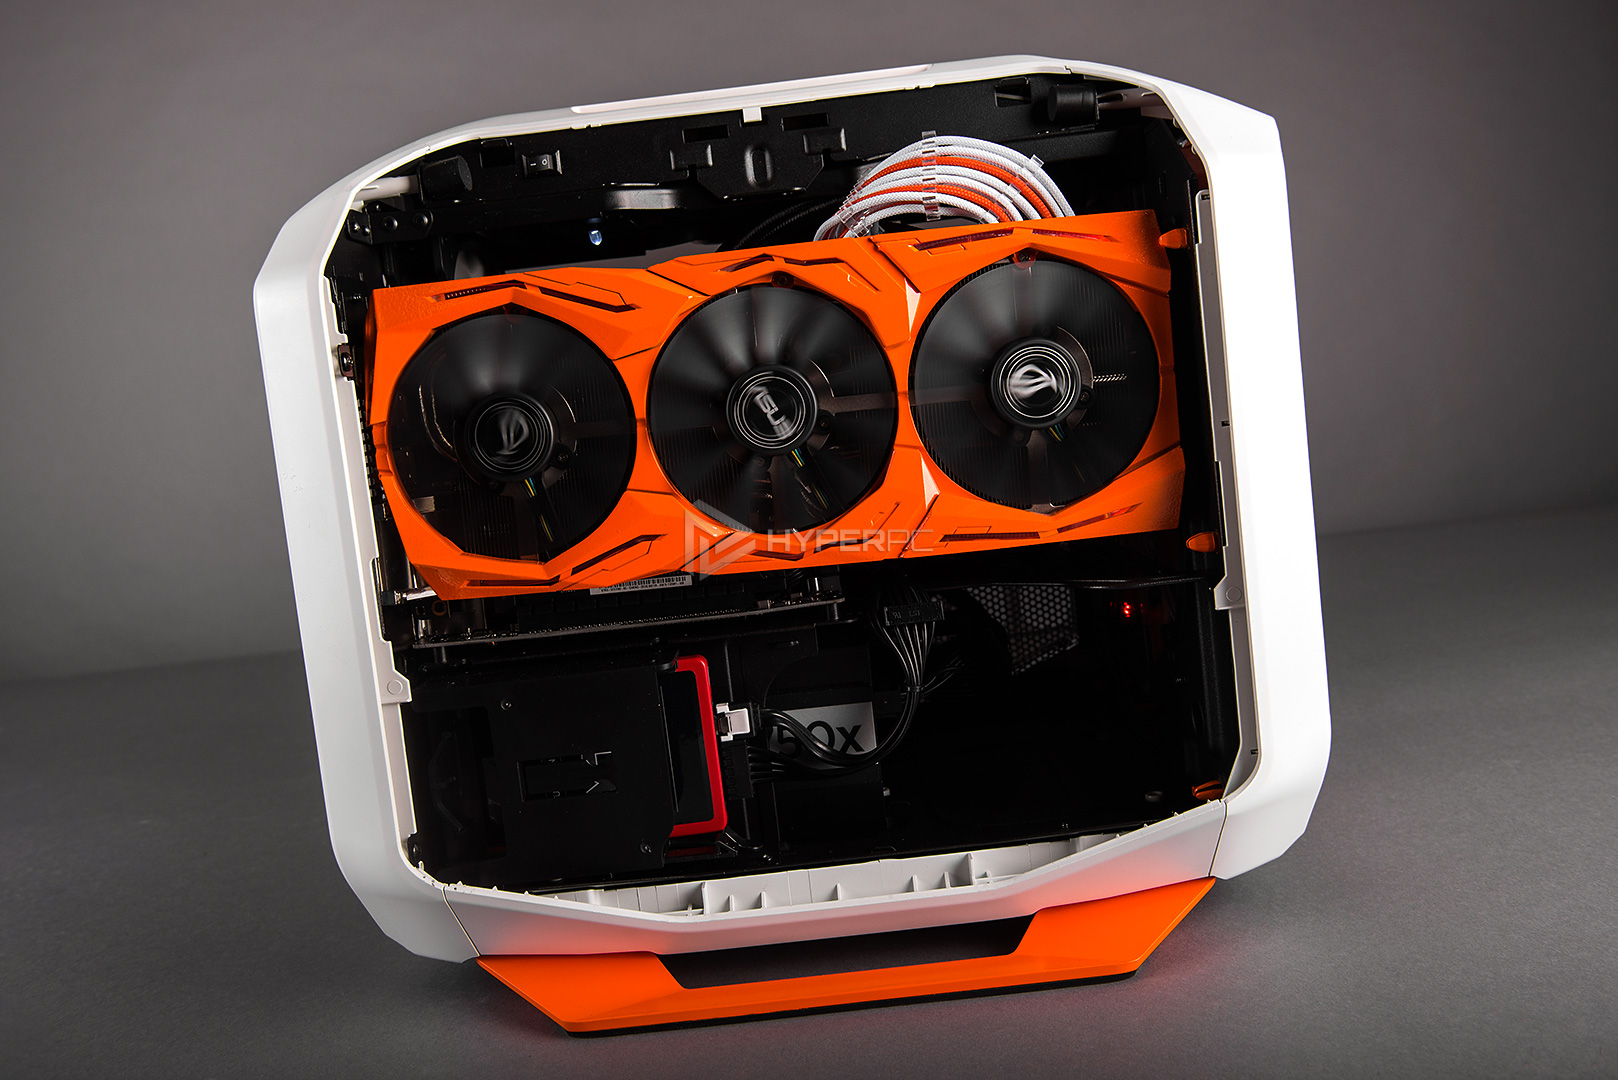 corsair 380t theoblade photo 06